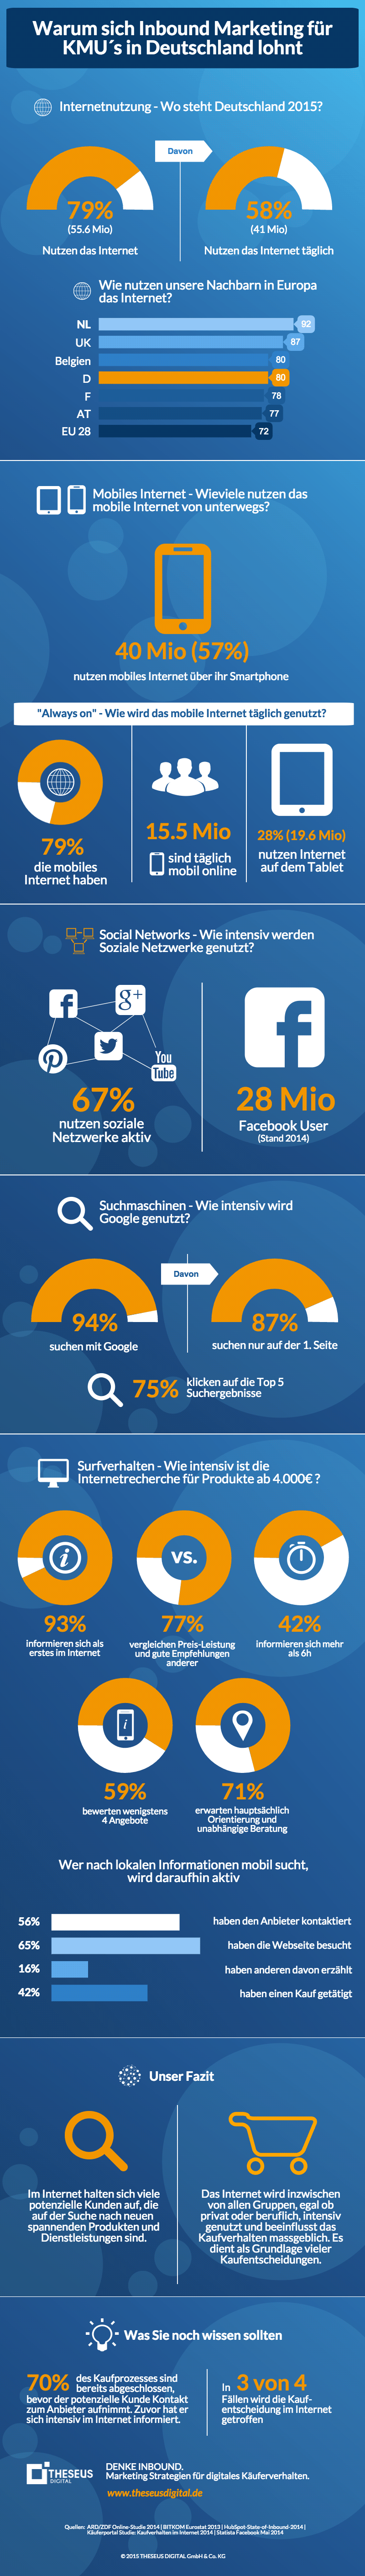 infografik_inbound-marketing-potenzial_online-internet-nutzung-deutschland-2015